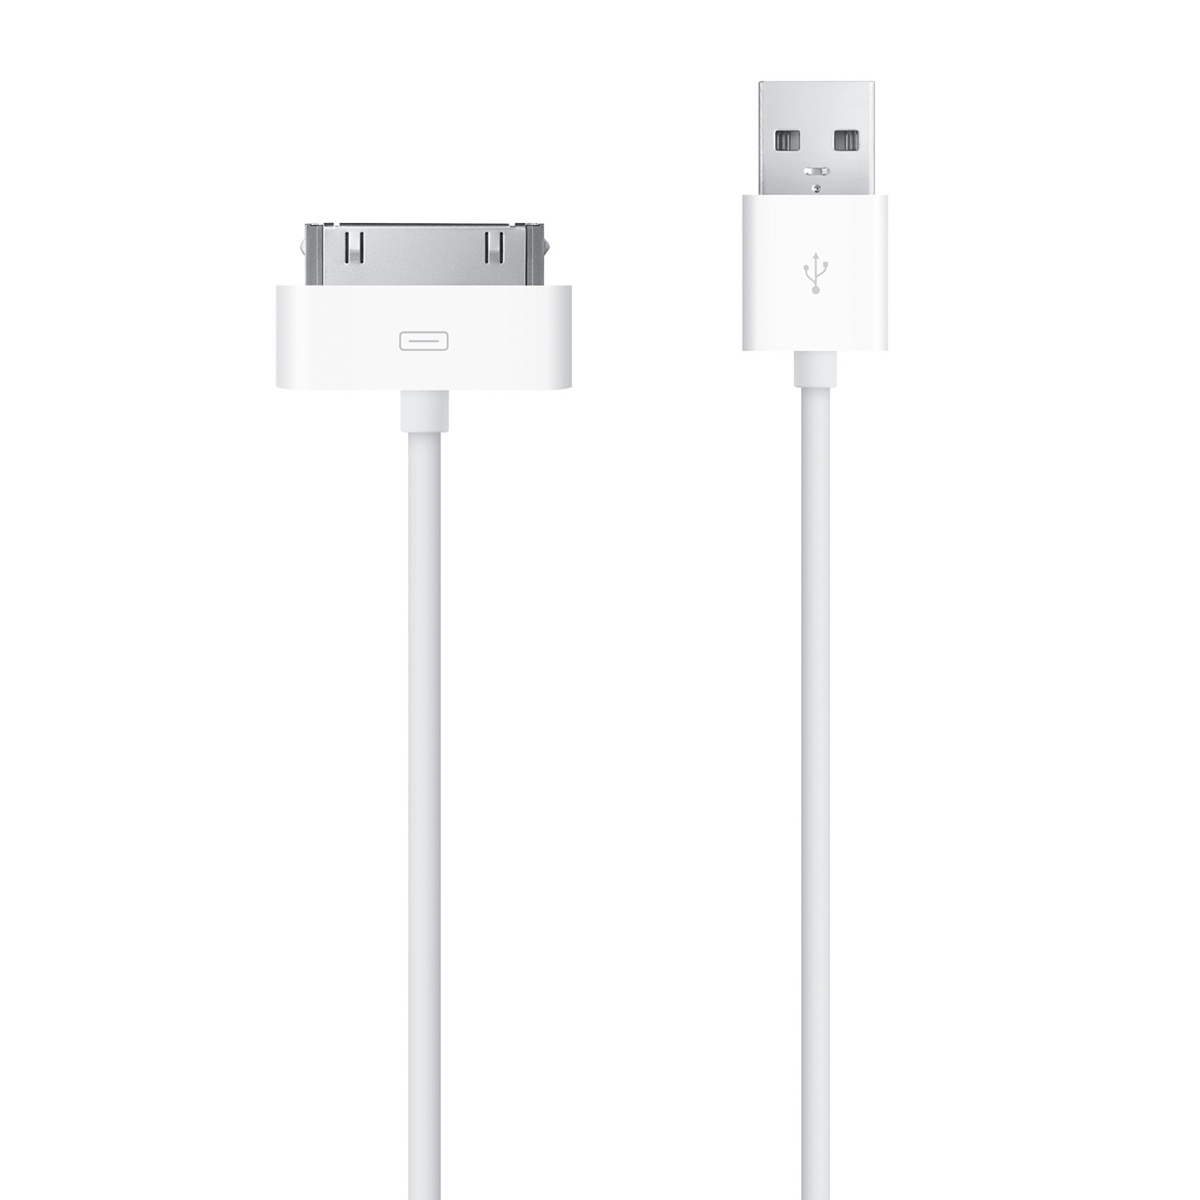 Apple USB to Dock Connector for iPhone, iPad and iPod (bulk package)